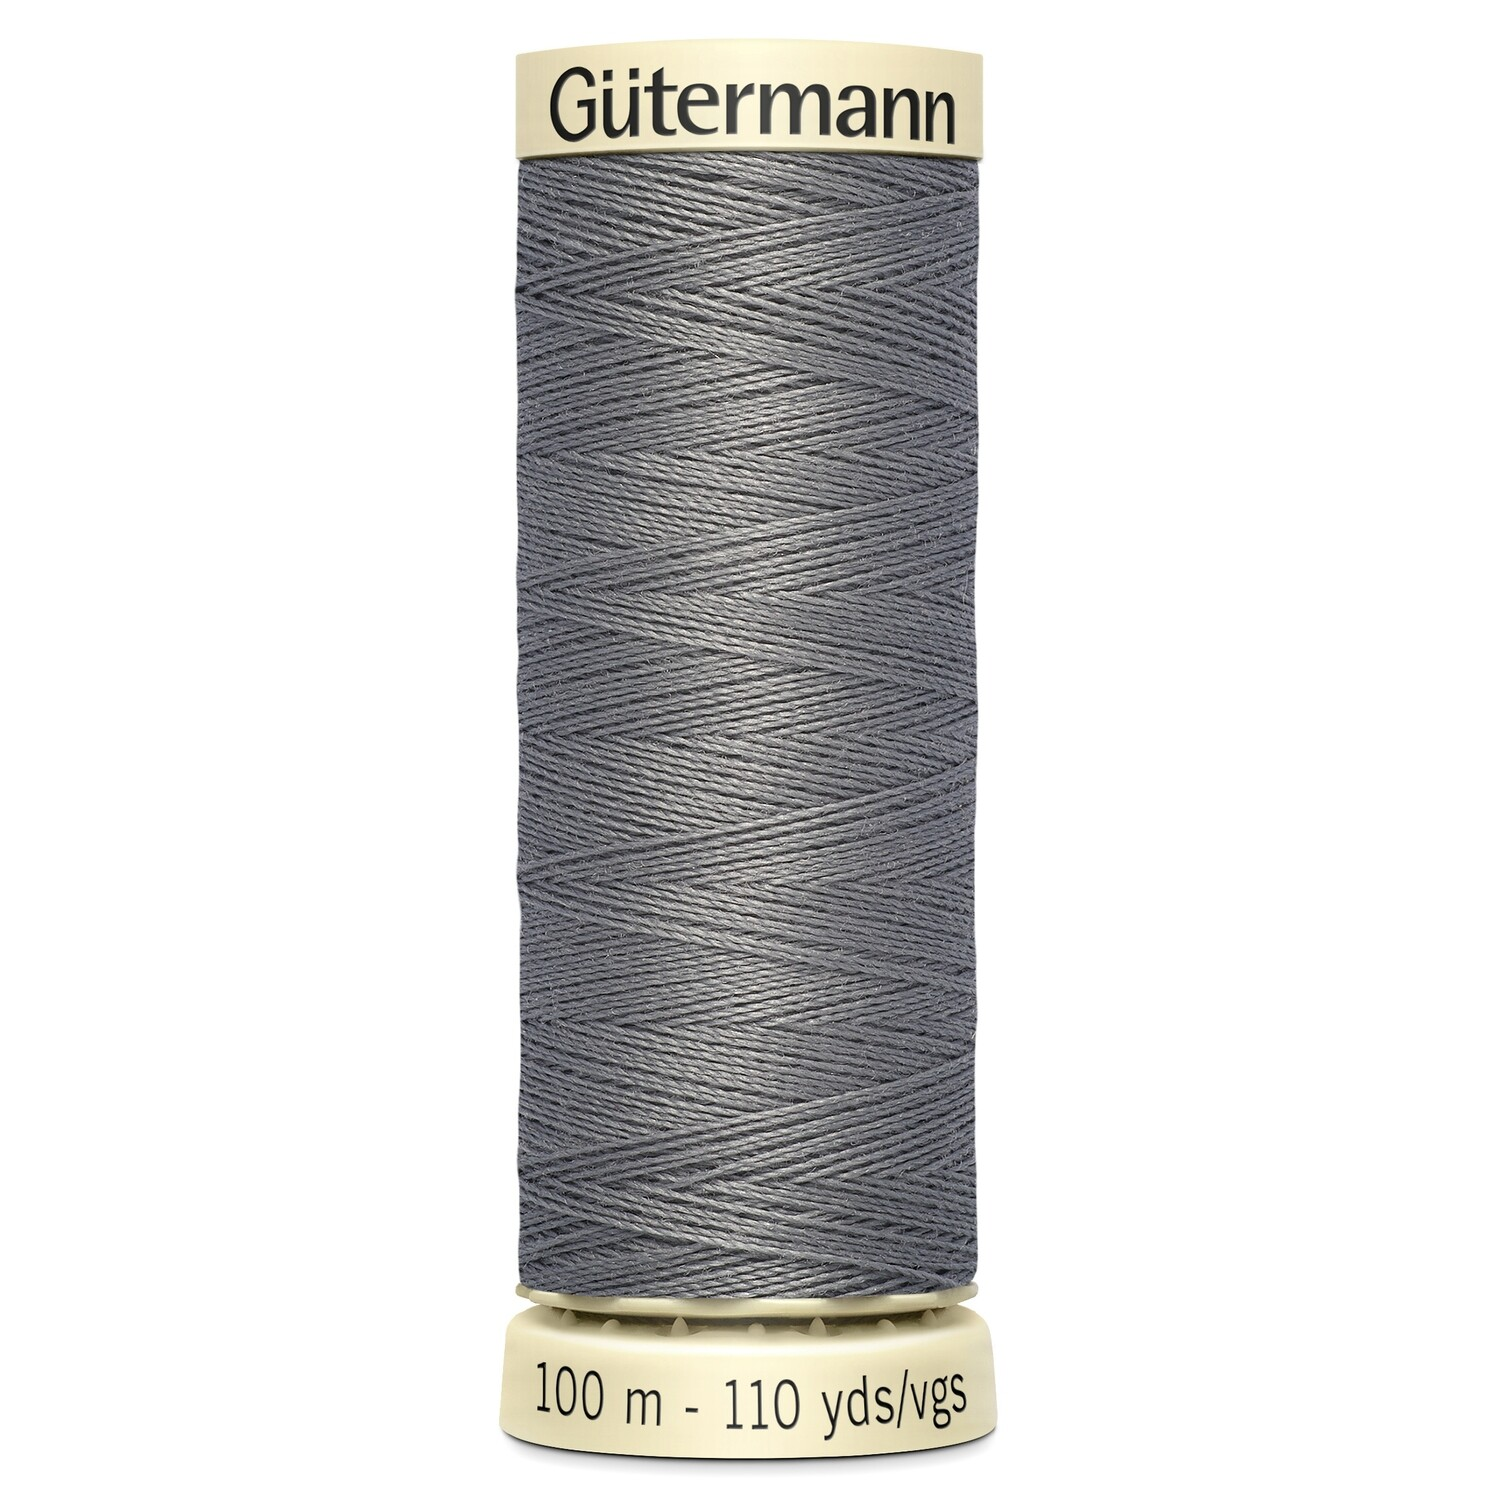 Gutermann Sew-All thread 496